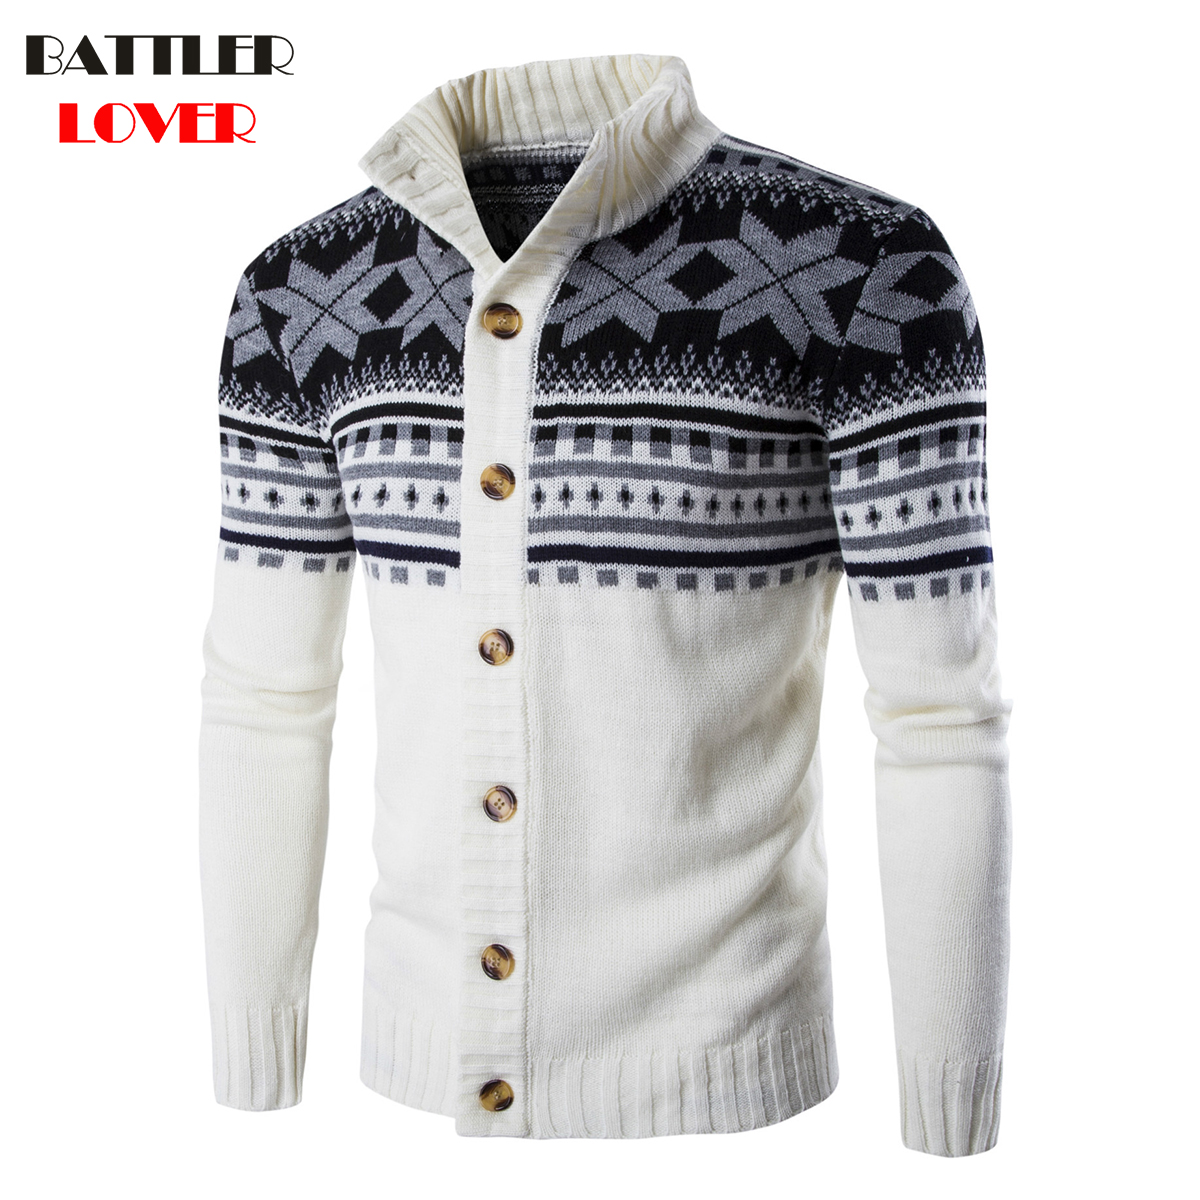 2018 Mens Sweaters Men Winter Thick Warm Clothes Casual Christmas Jacket Coat Jumper Autumn Men Outwear Sweater Hombre Cardigans